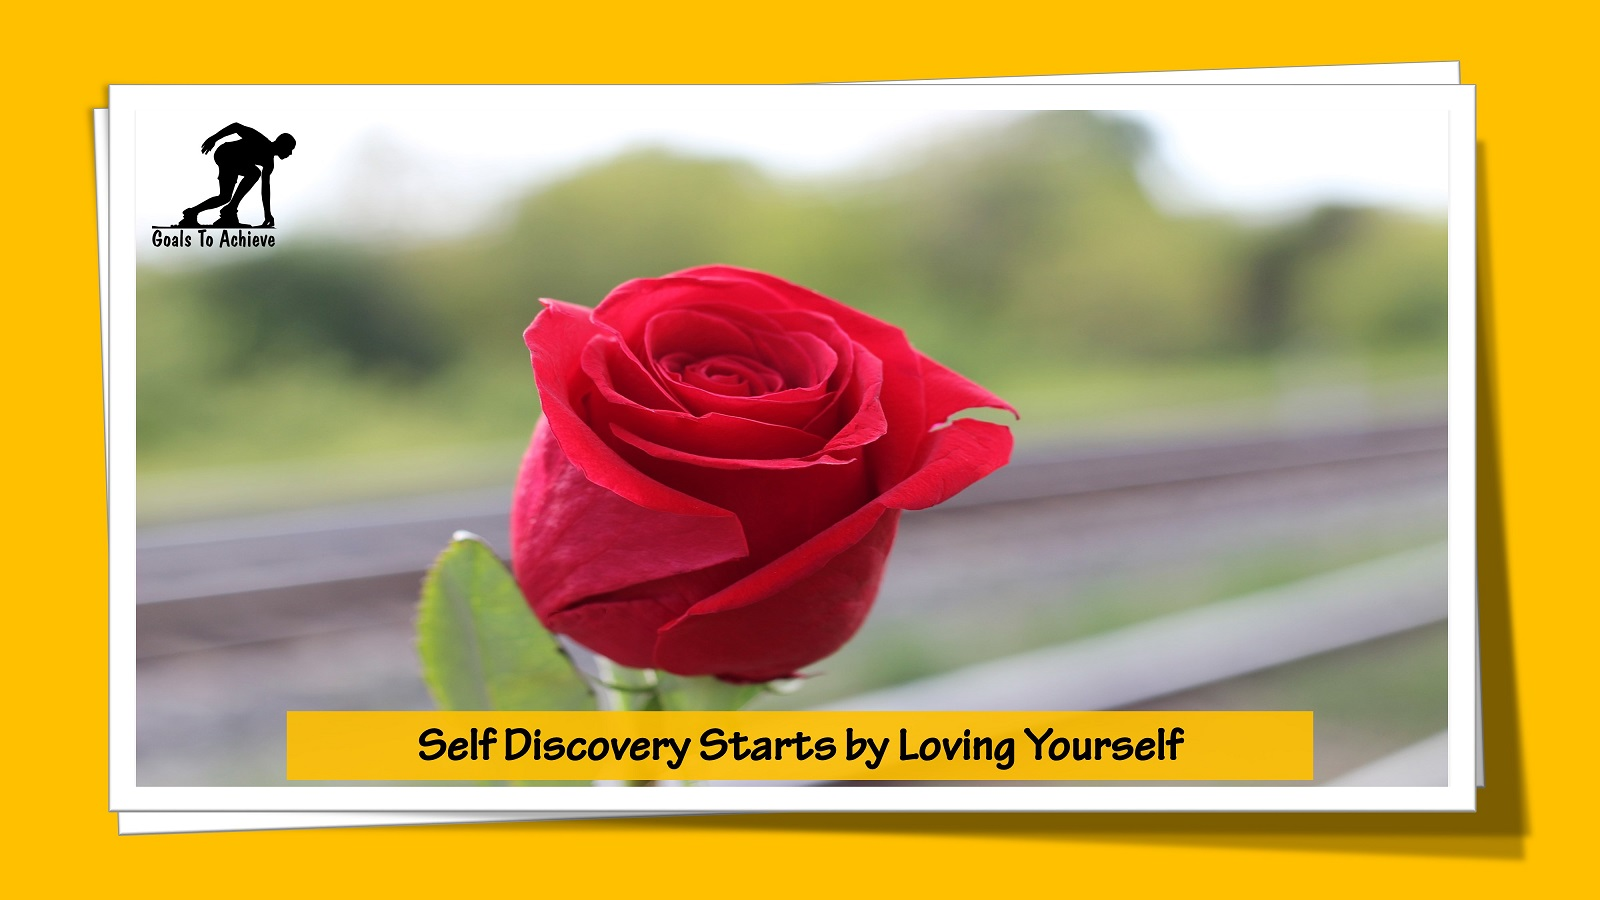 Self Discovery Starts by Loving Yourself